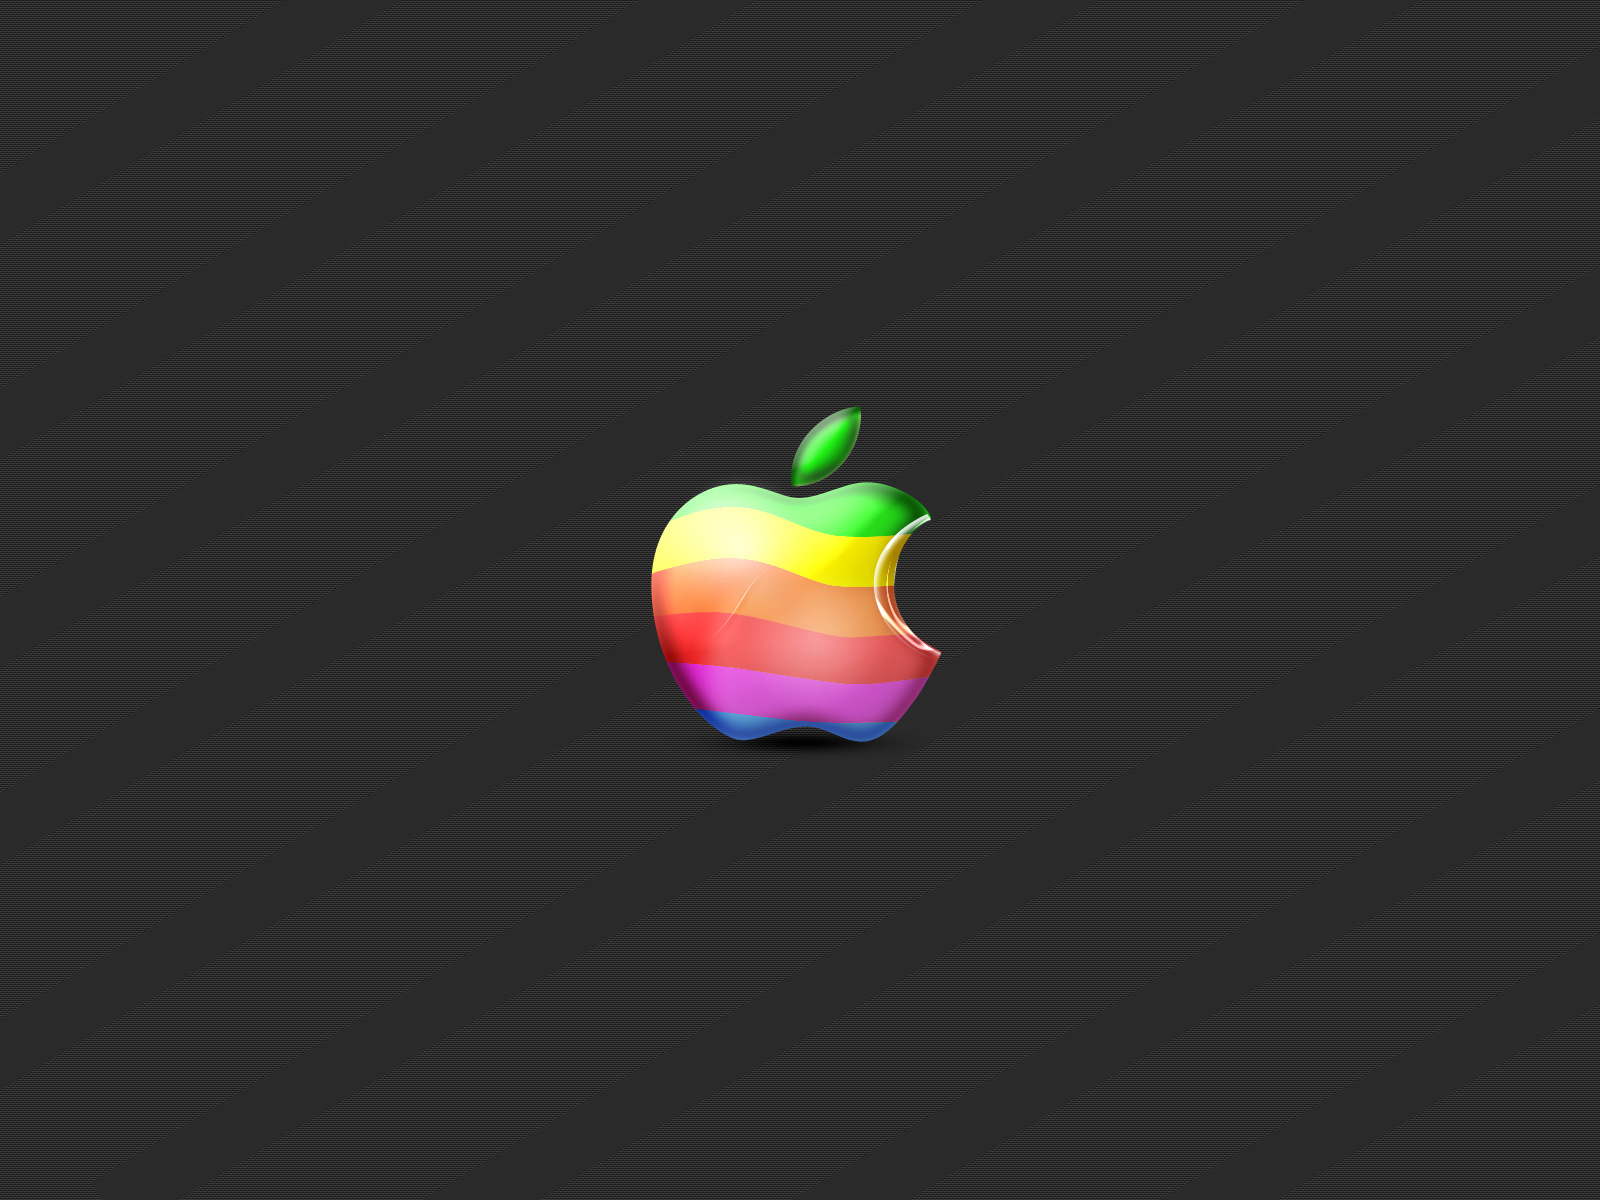 http://3.bp.blogspot.com/-XtTzKKZODvc/Th0fLI8fHBI/AAAAAAAAAW0/PFoWK4lyPm4/s1600/cool_apple_wallpaper.jpg